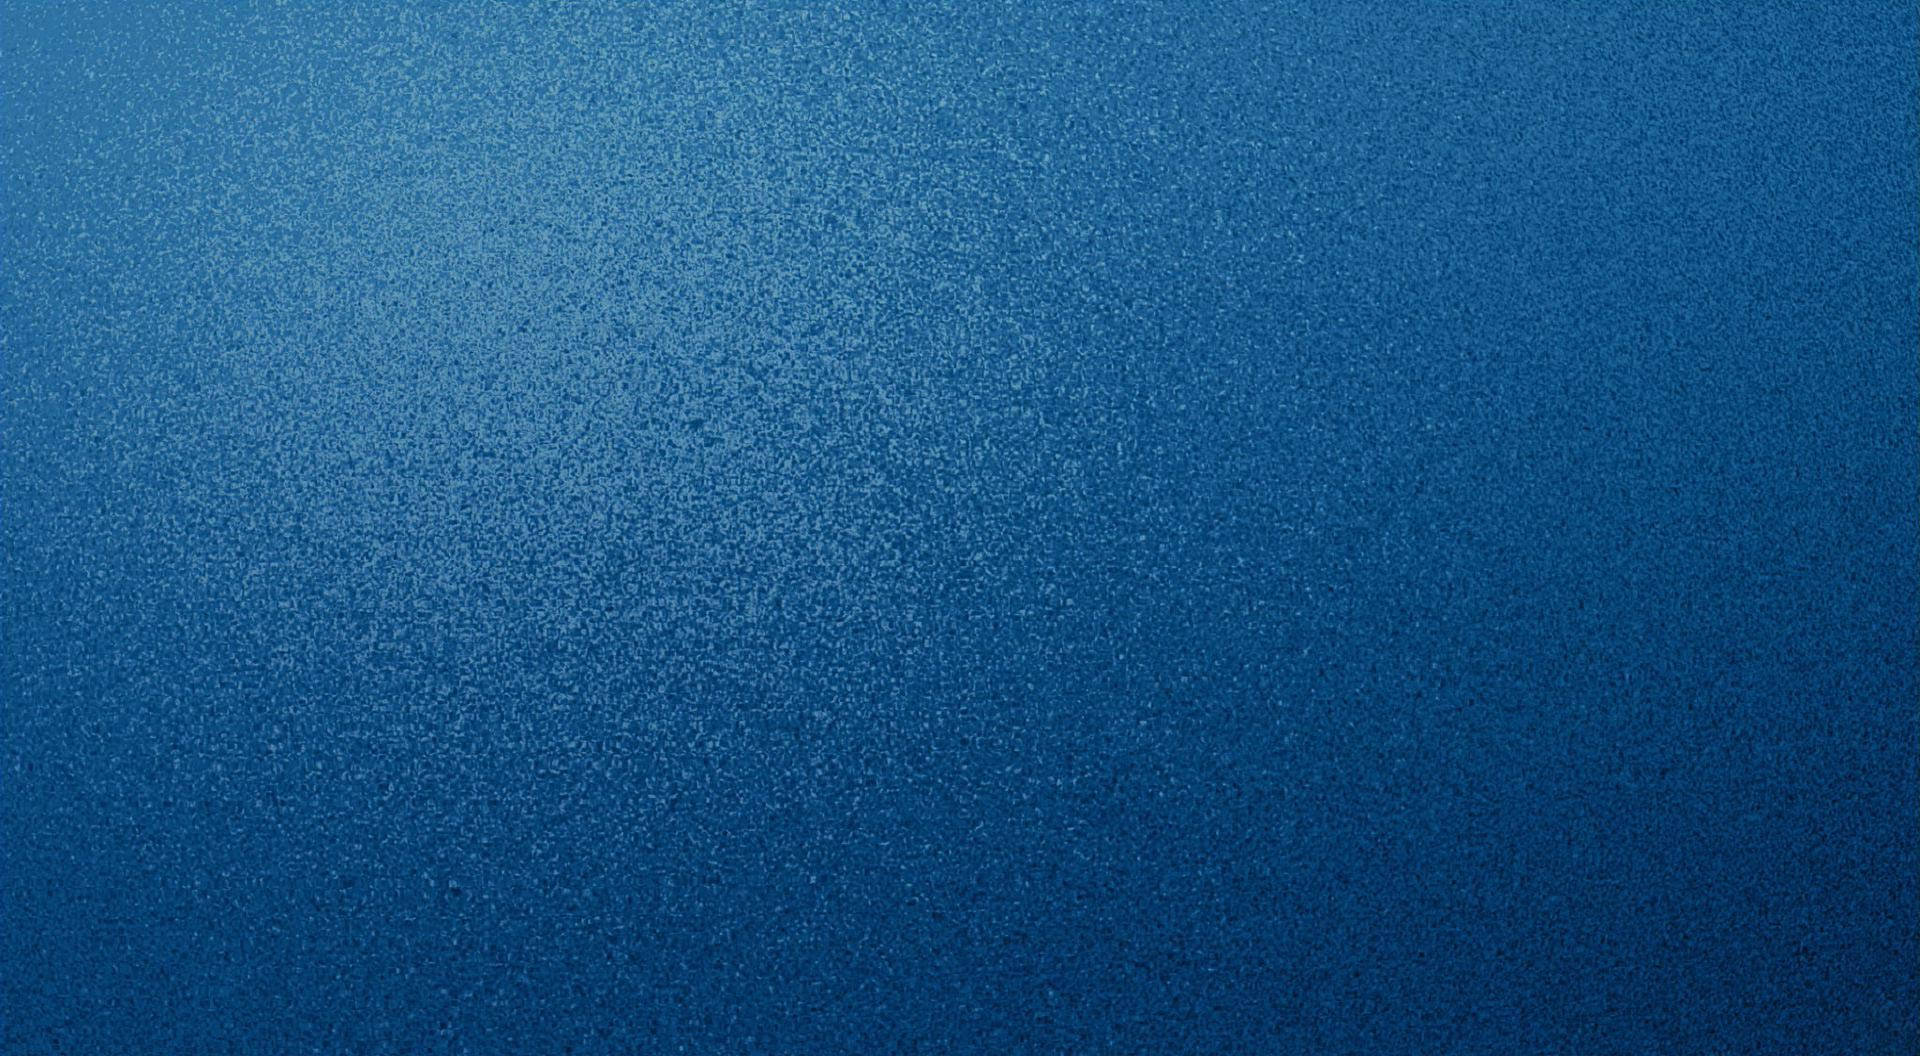 Free Blue Wallpaper Backgrounds